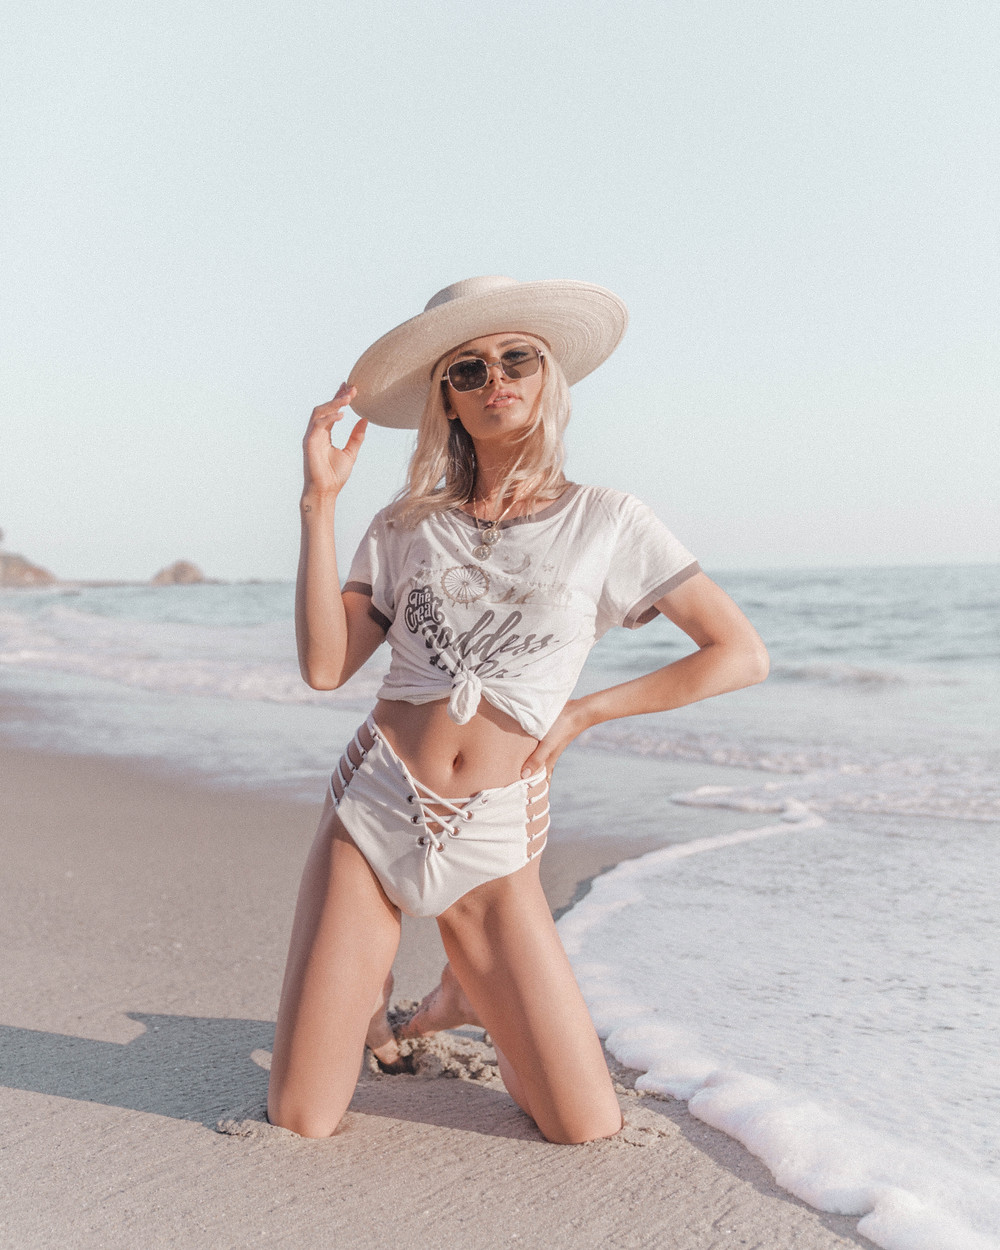 beach outfit what to wear to the beach summer style summer outfit of the day